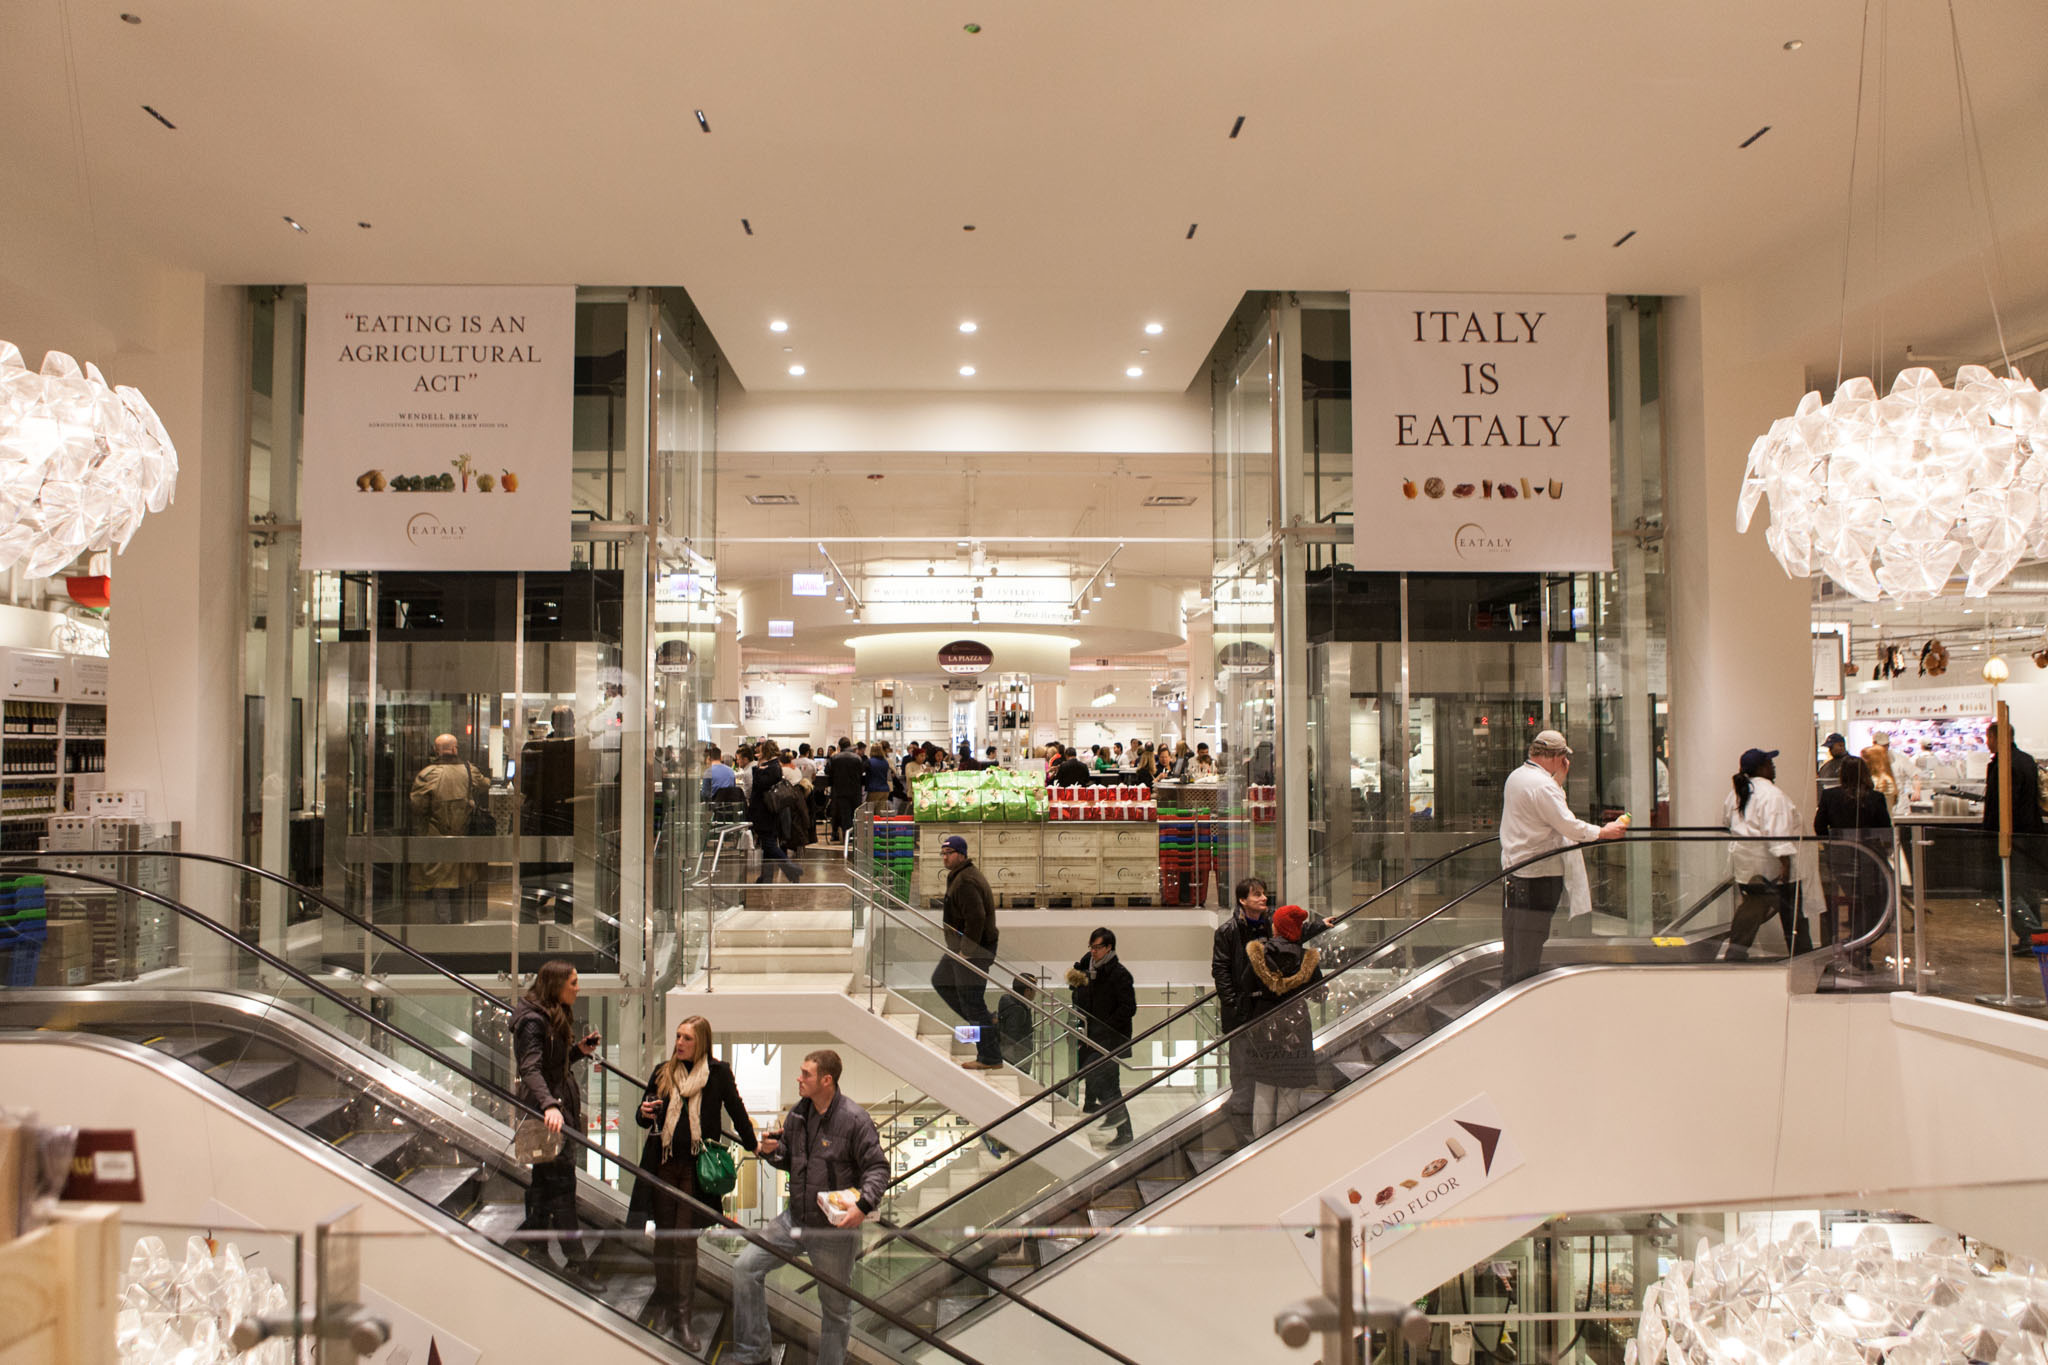 Eataly makes changes to its restaurants